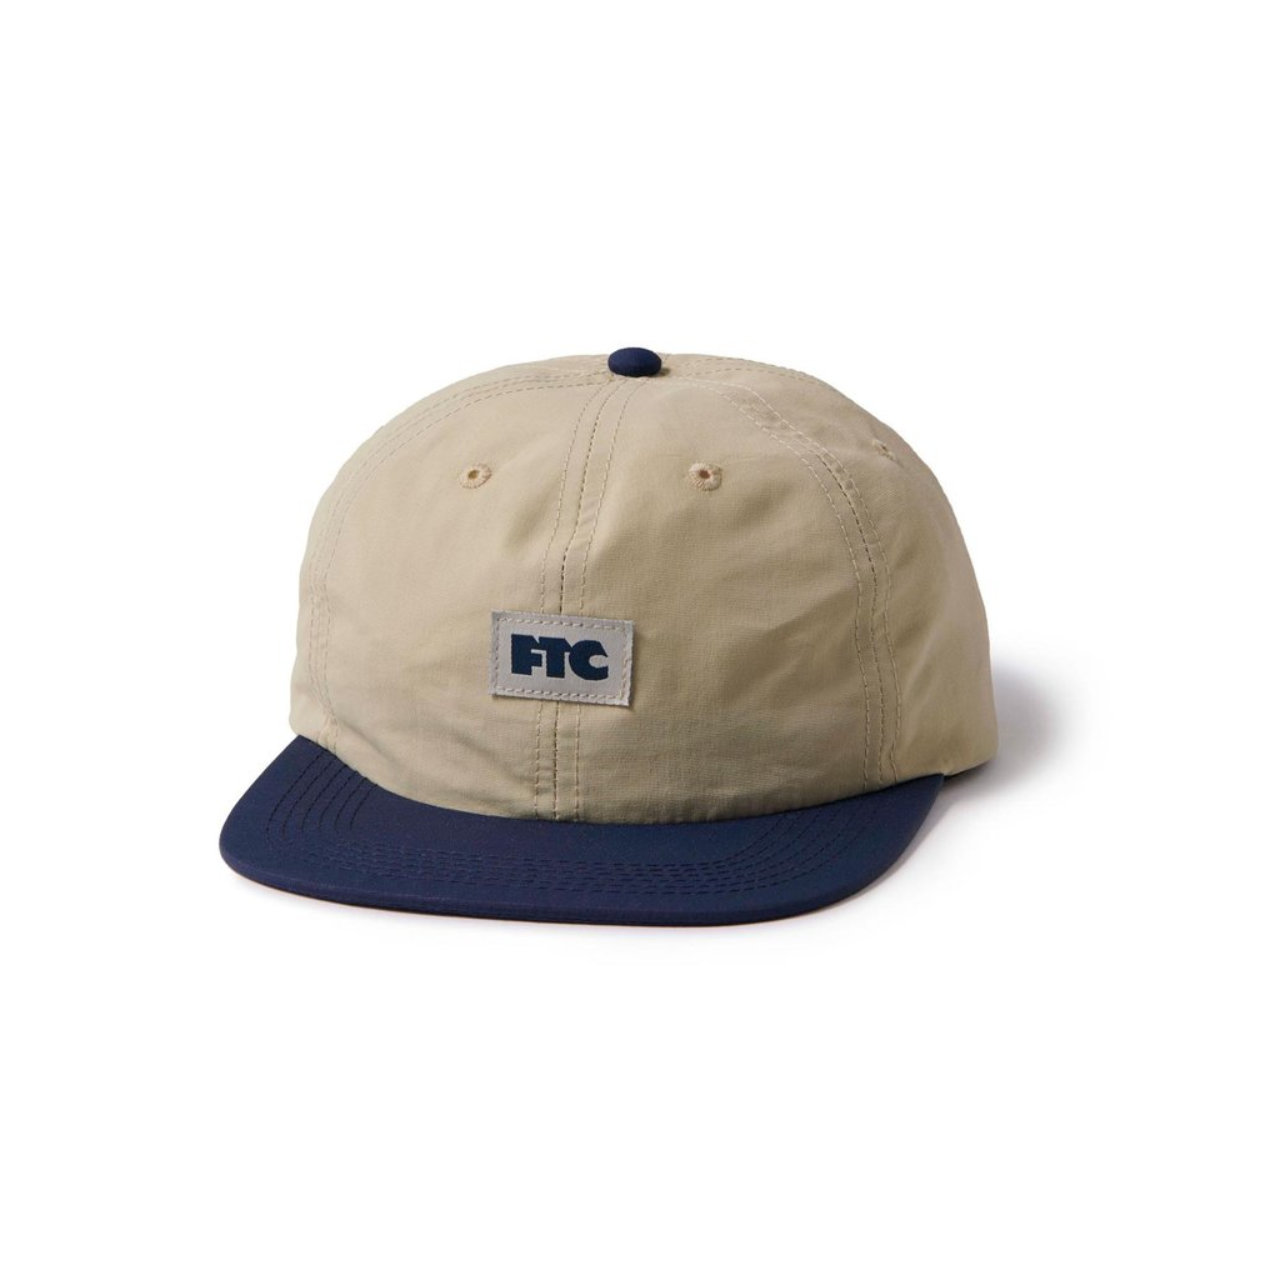 FTC - Nylon Small Og 6 Panel Hat Khaki